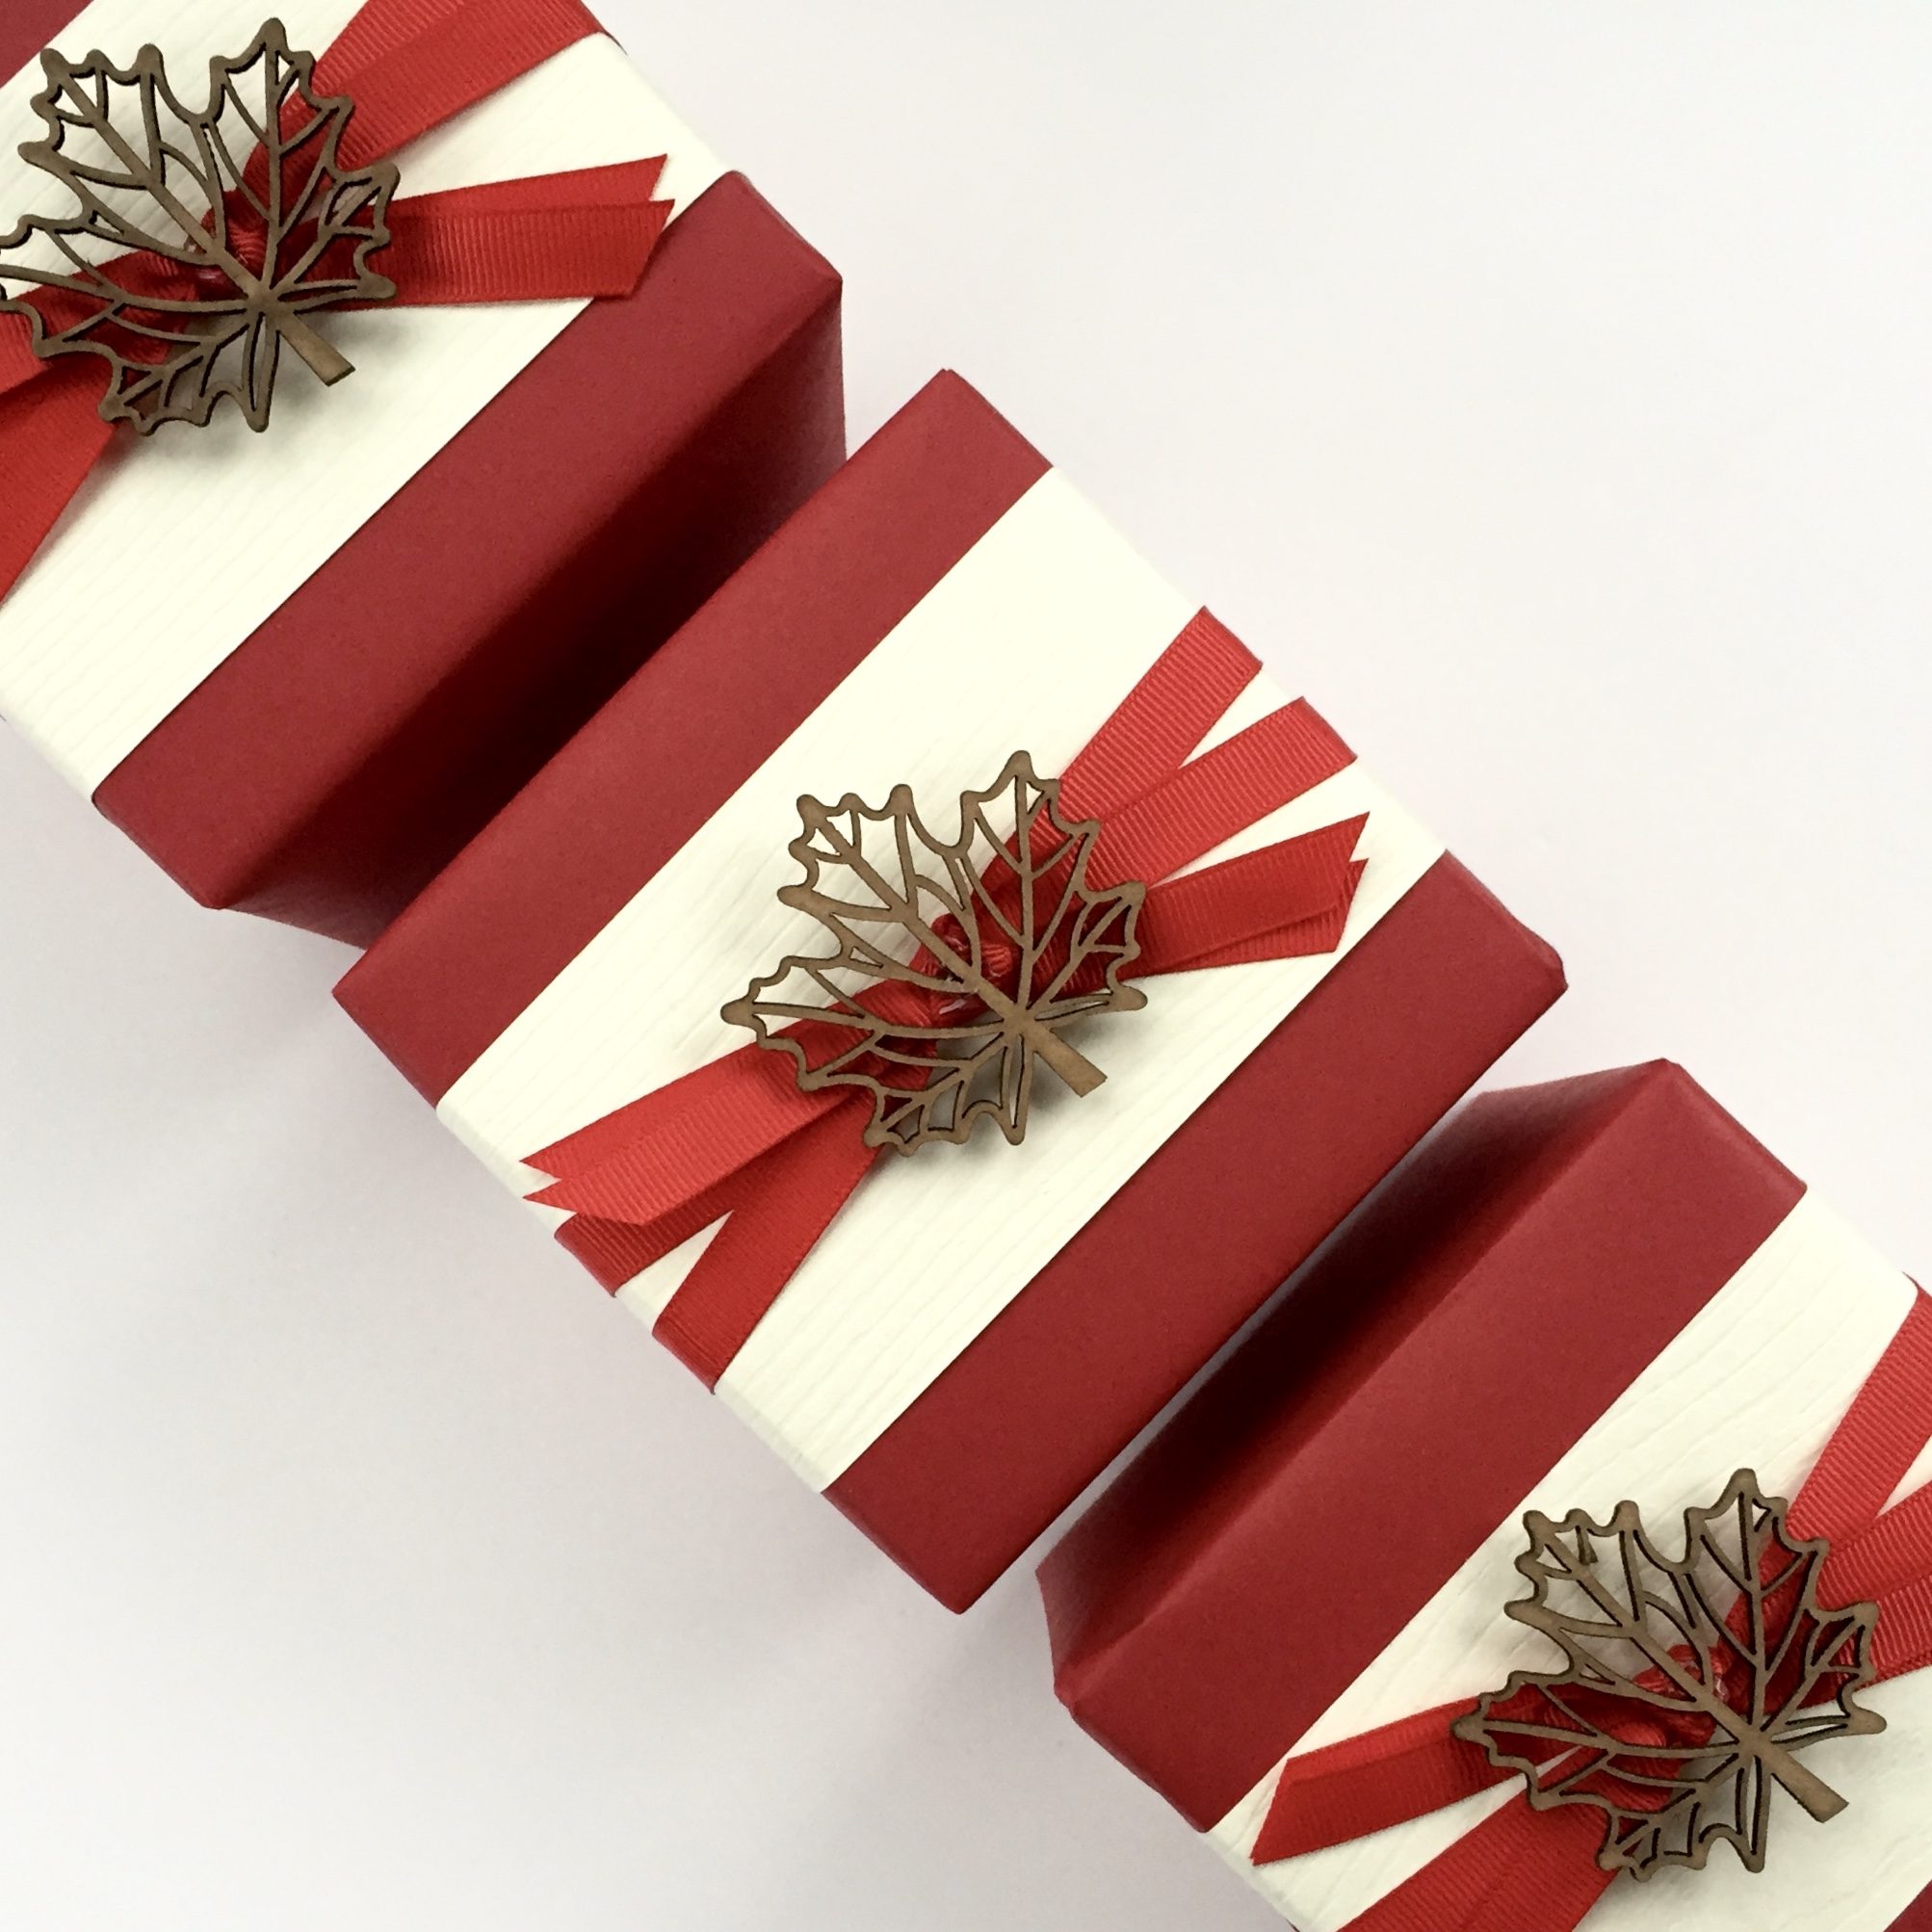 Canadian-Themed business gifts, wrapped by Corinna vanGerwen